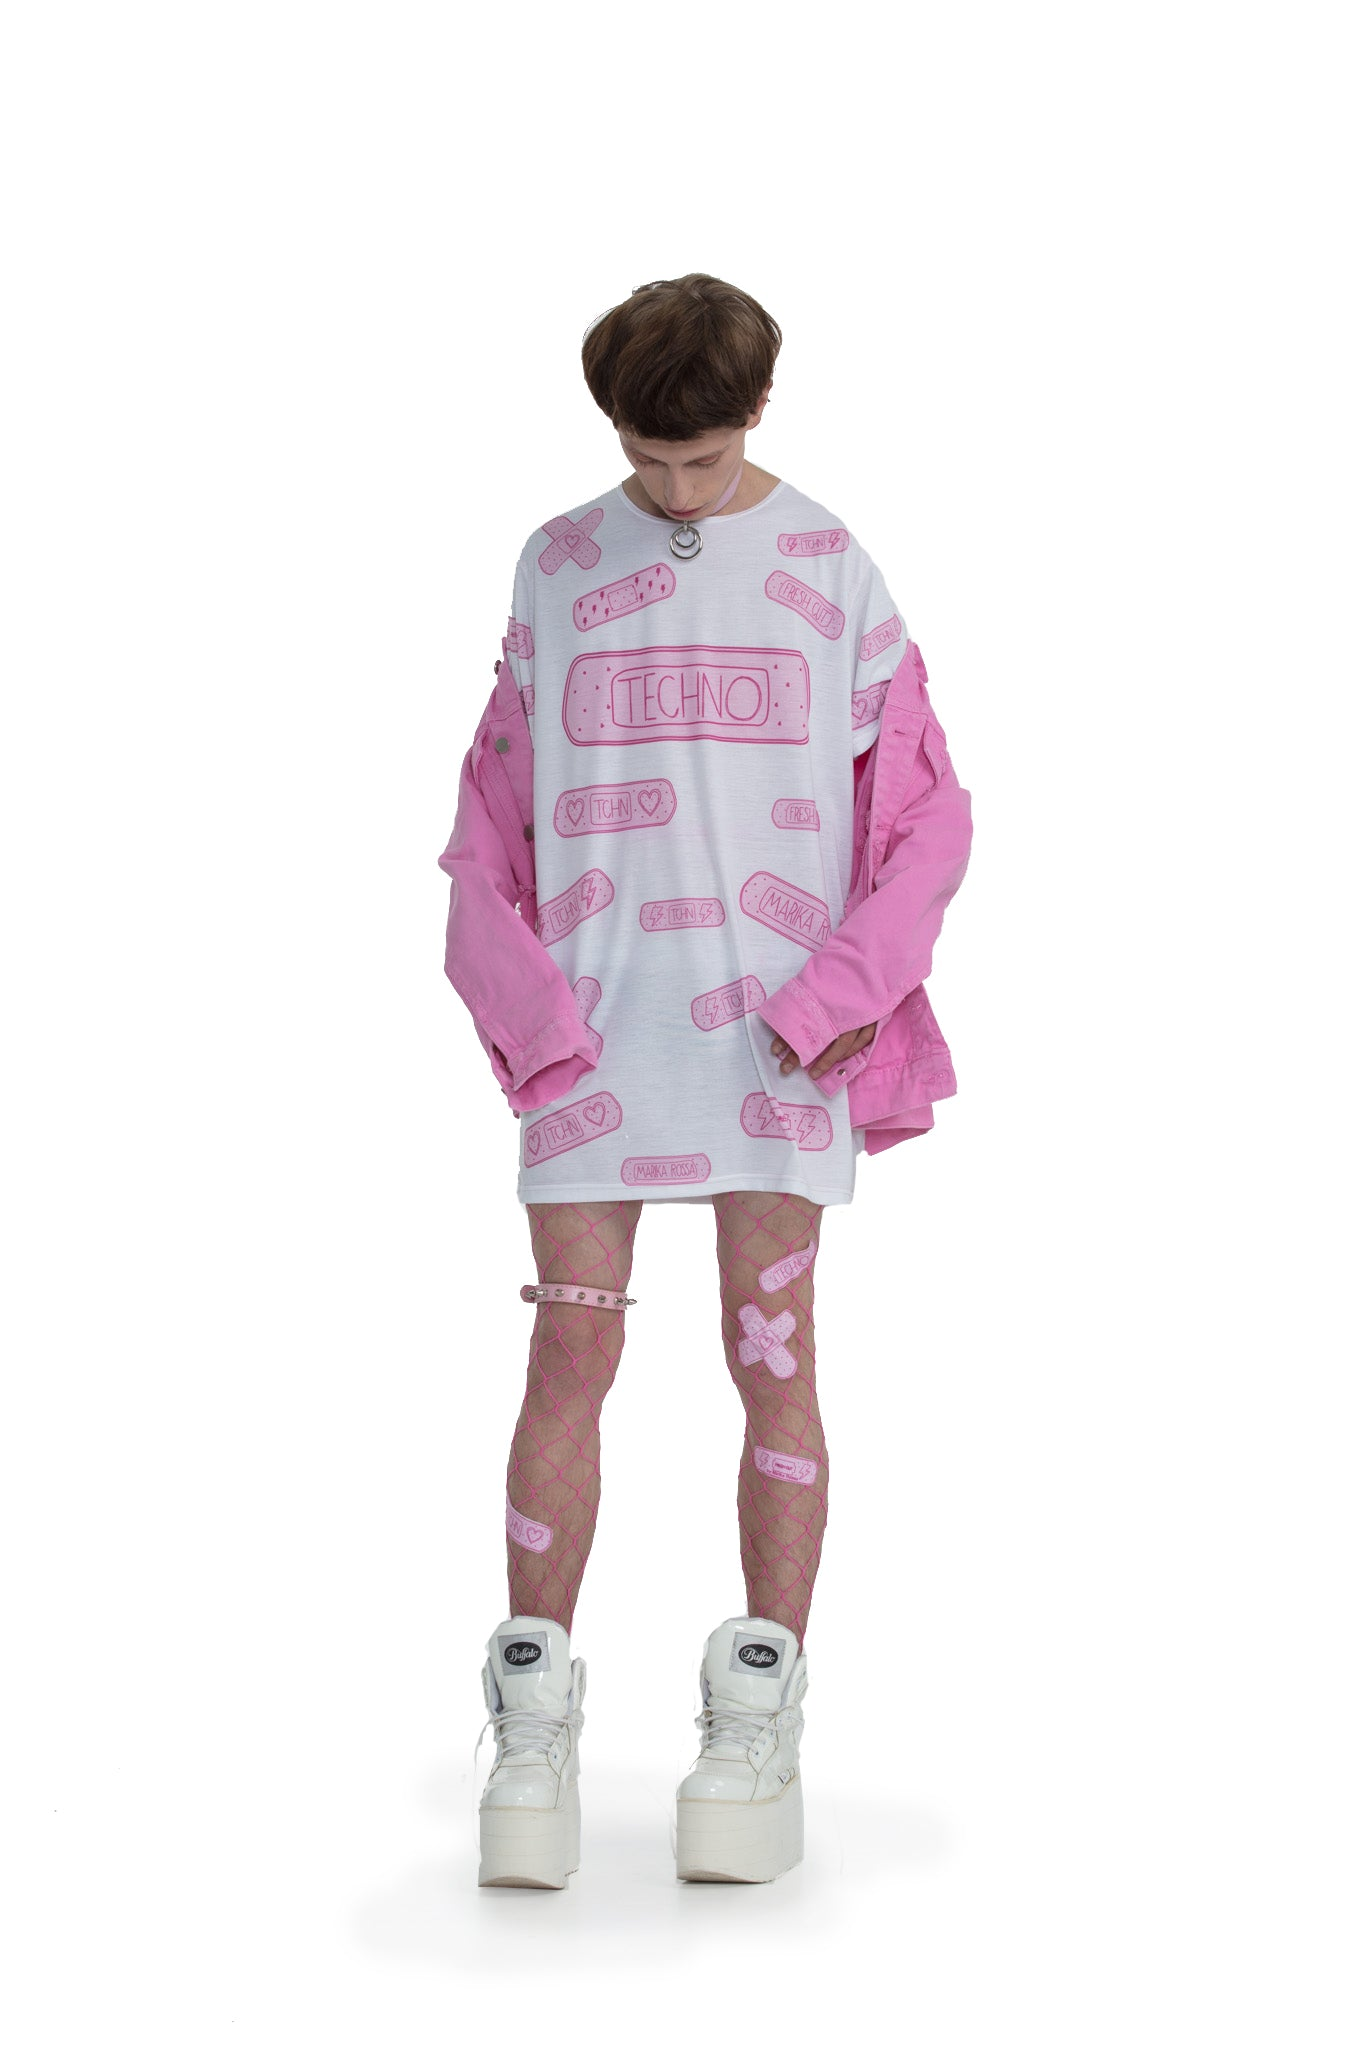 Techno Bandaids - oversized T-shirt [White]